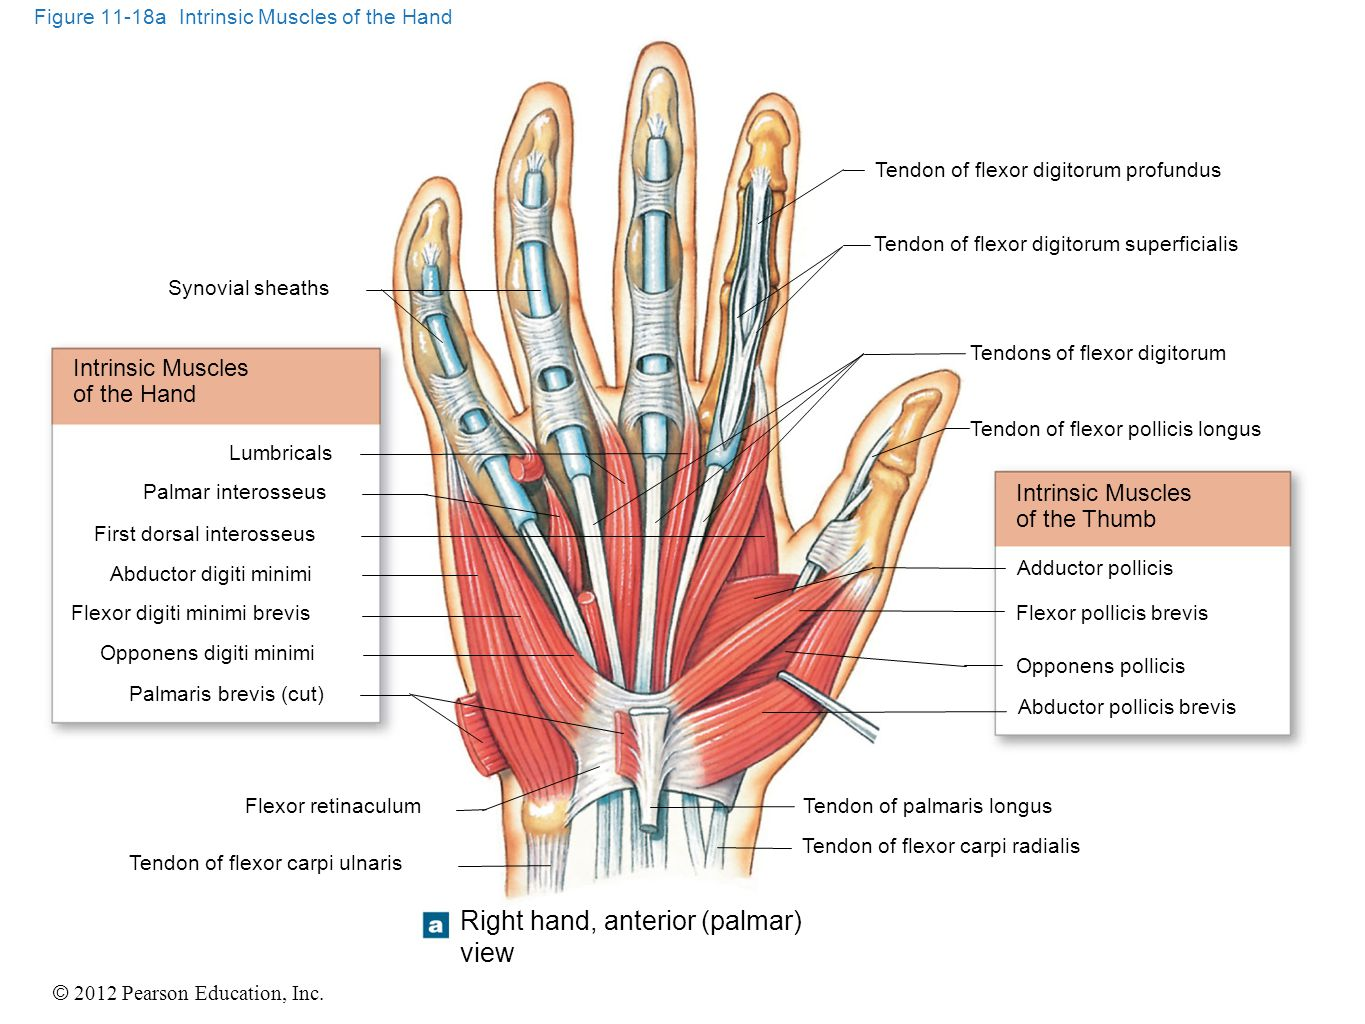 © 2012 Pearson Education, Inc. Figure 11-18a Intrinsic Muscles of the Hand Synovial sheaths Intrinsic Muscles of the Hand Lumbricals Palmar interosseu